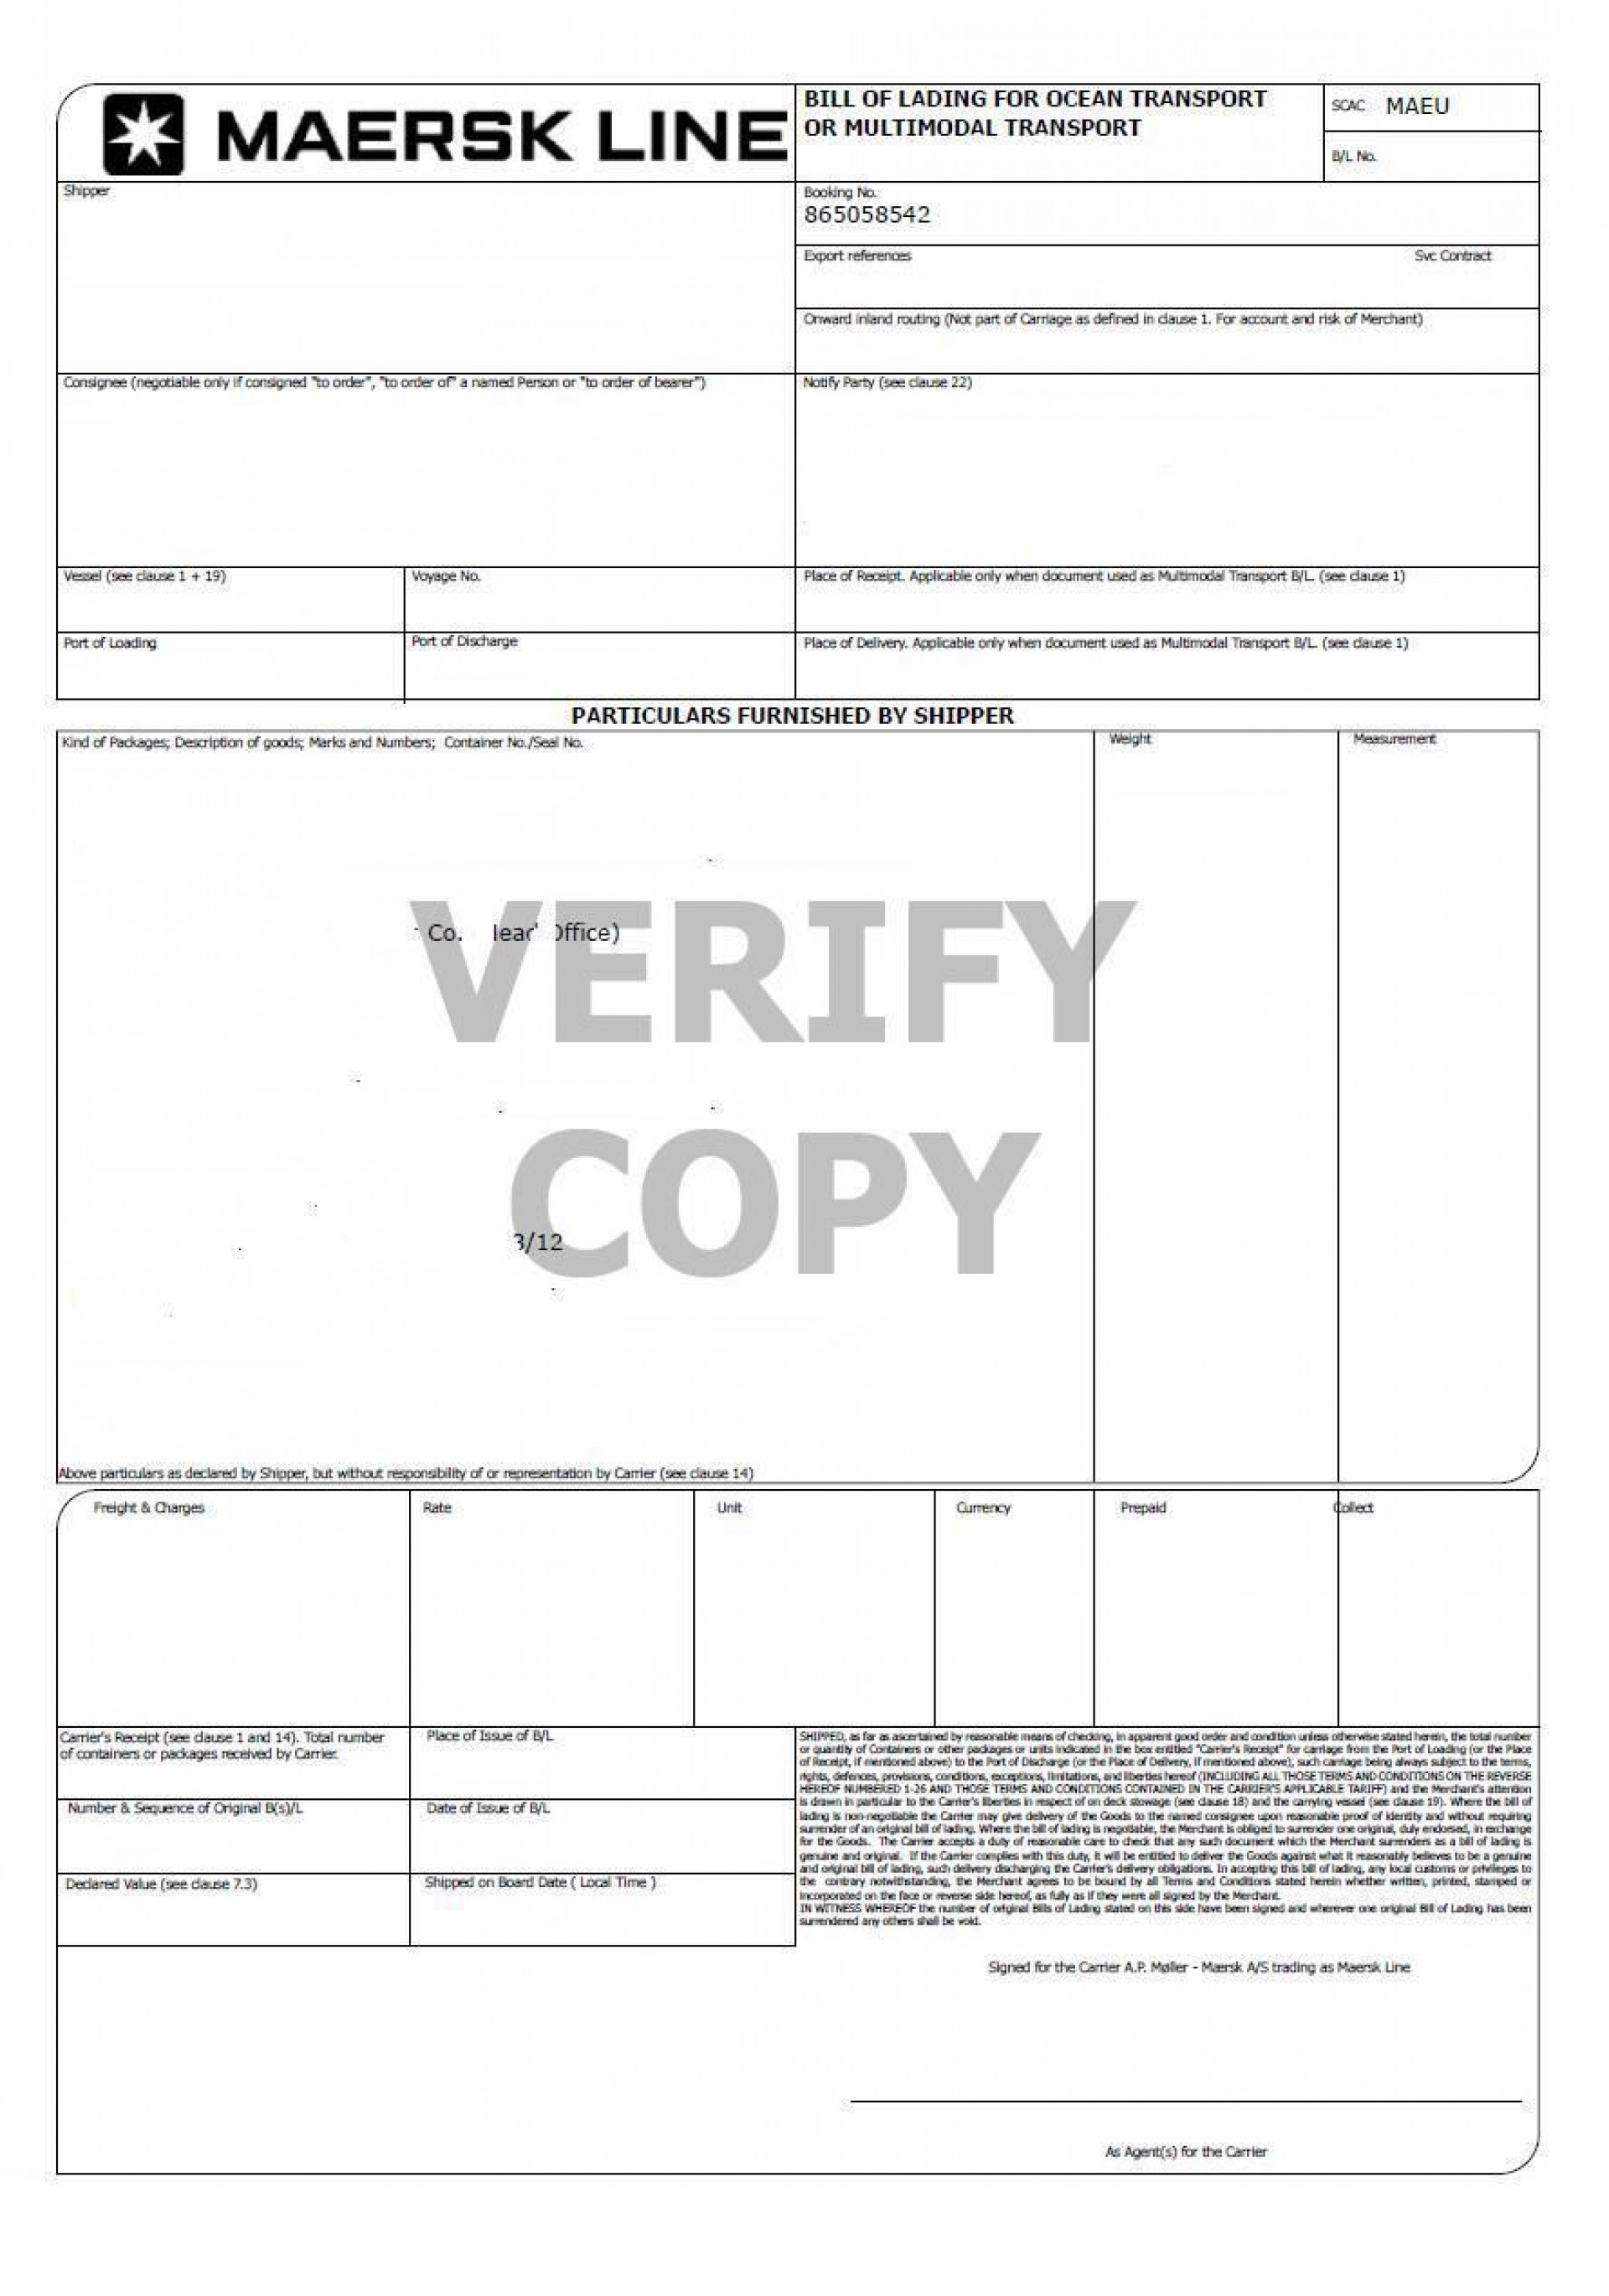 000 Formidable Bill Of Lading Template Word Doc High Resolution  Document Form1920